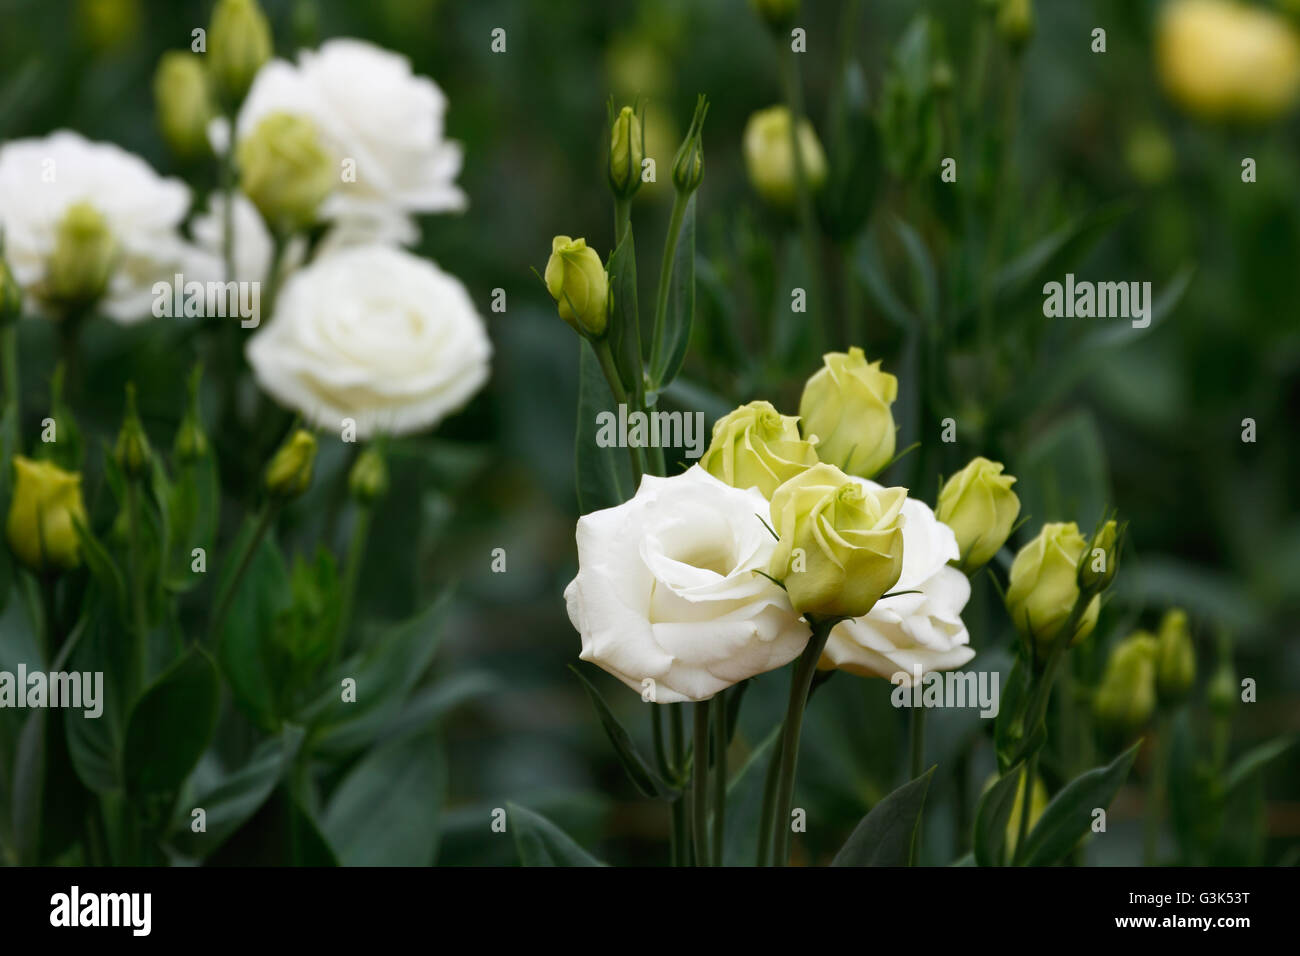 Lisianthus Eustoma Flowers White Rose The Plant That Look Like A